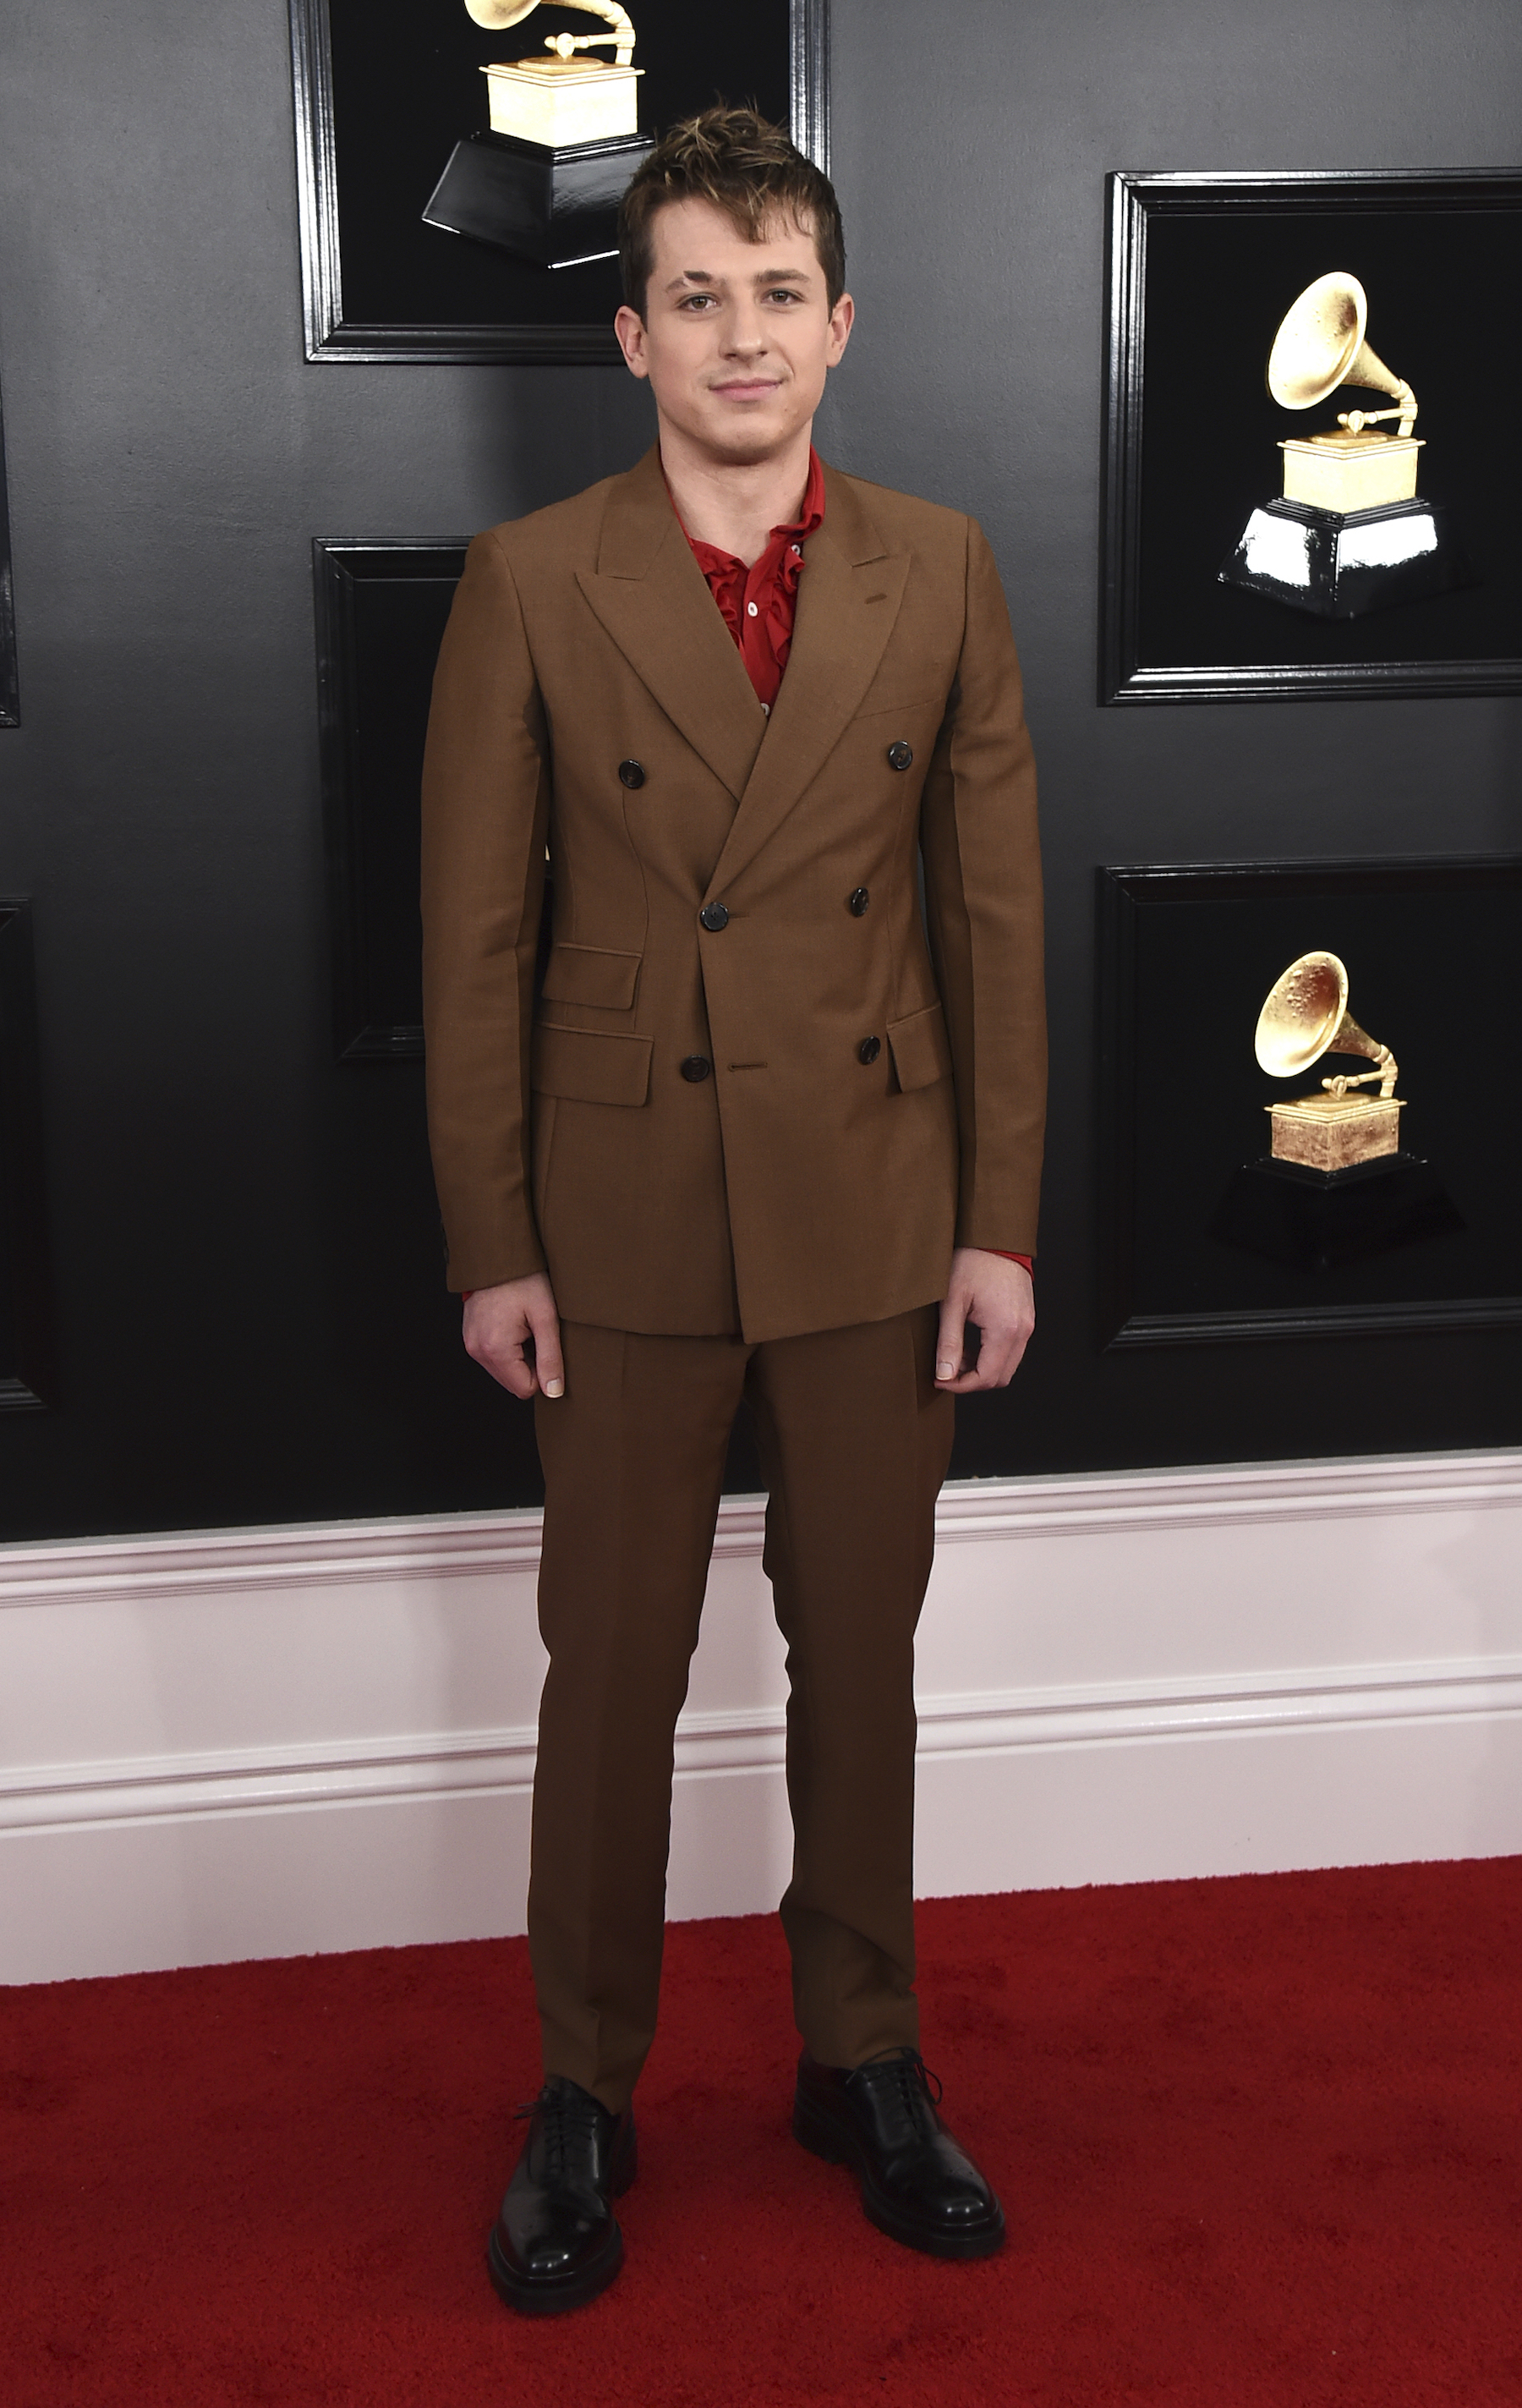 <div class='meta'><div class='origin-logo' data-origin='AP'></div><span class='caption-text' data-credit='Jordan Strauss/Invision/AP'>Charlie Puth arrives at the 61st annual Grammy Awards at the Staples Center on Sunday, Feb. 10, 2019, in Los Angeles.</span></div>